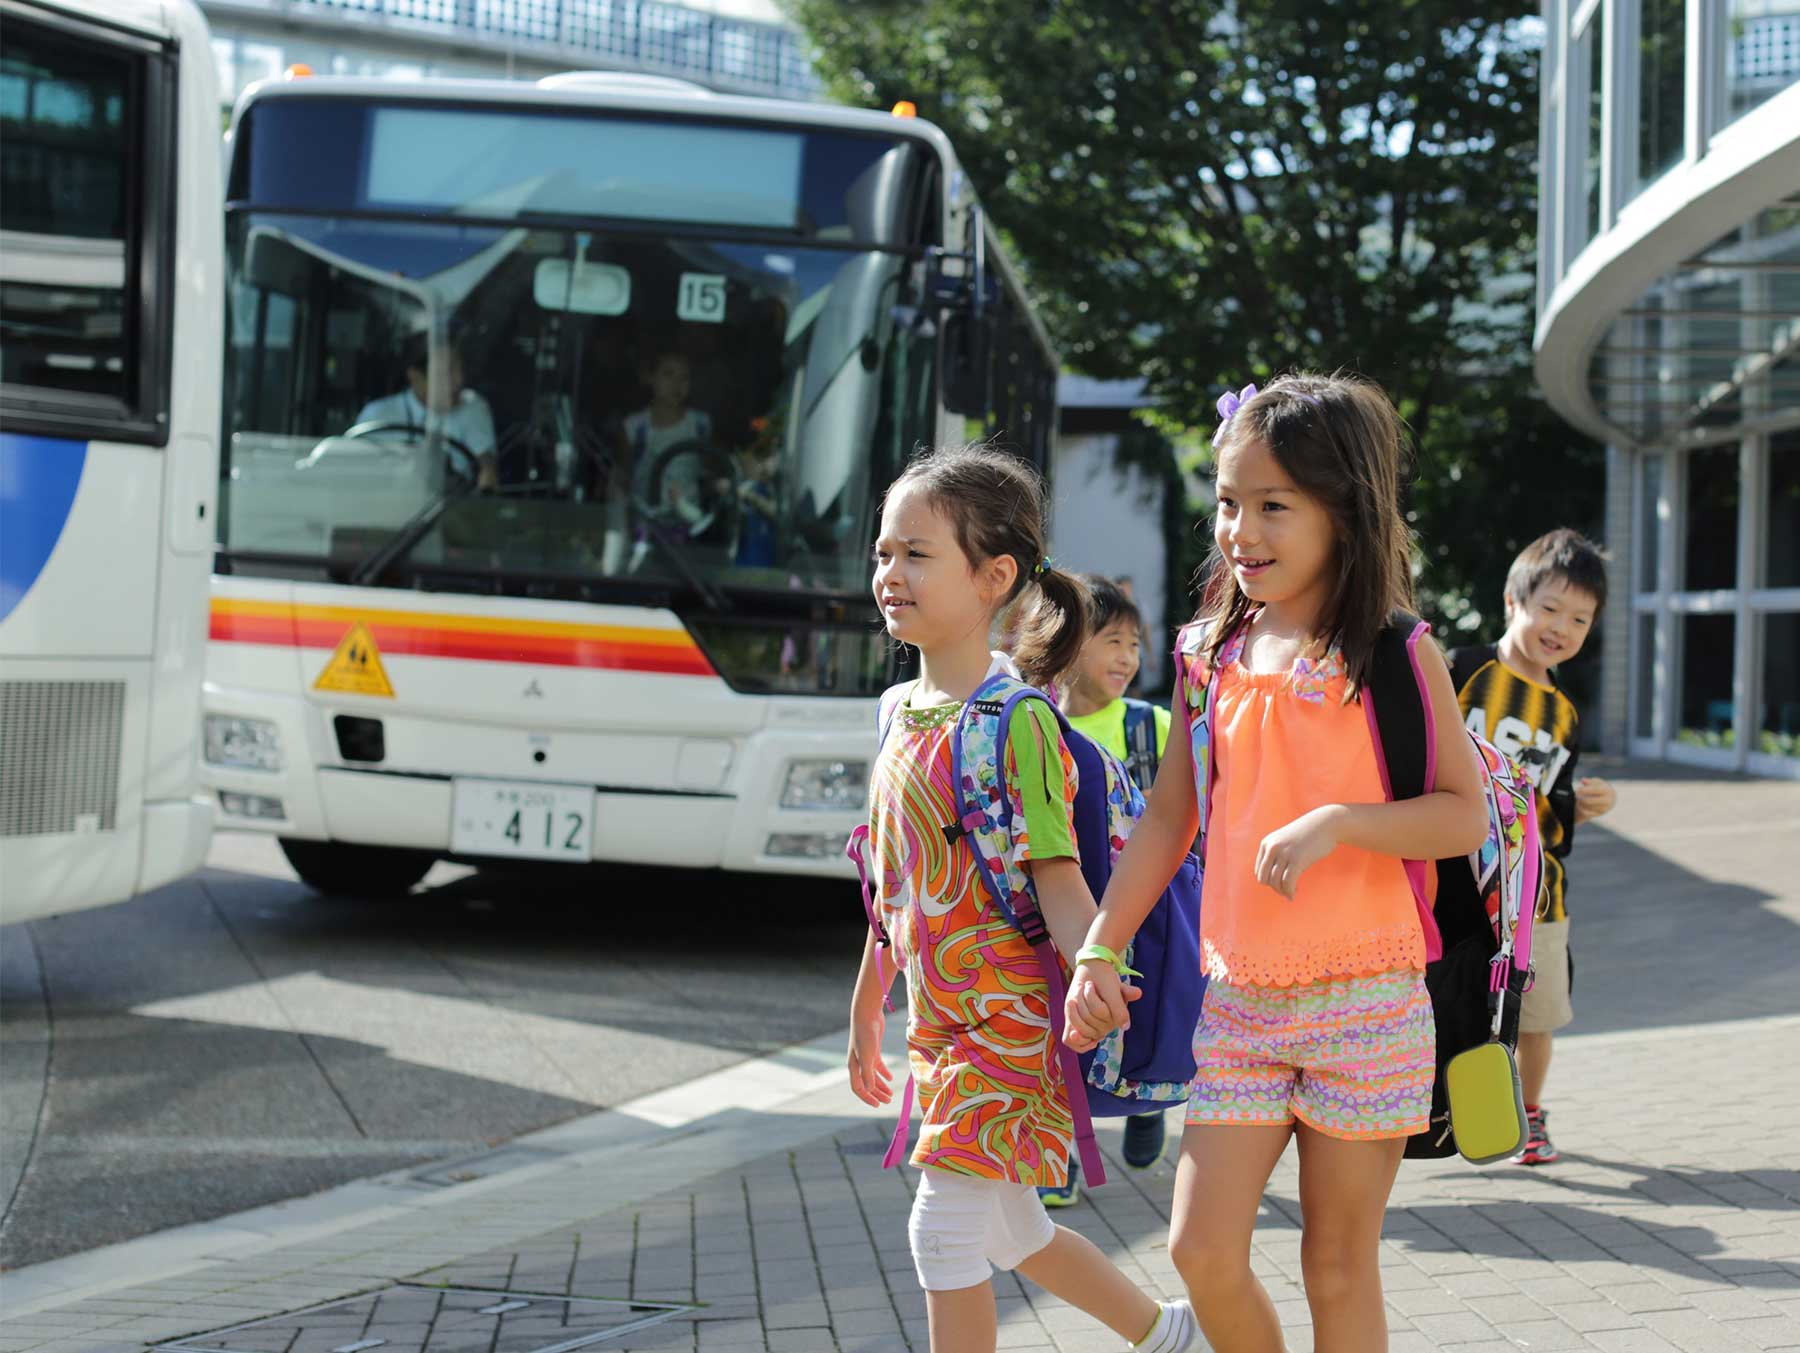 Two Elementary School Girls Walk Off Their Bus Hand-in-Hand